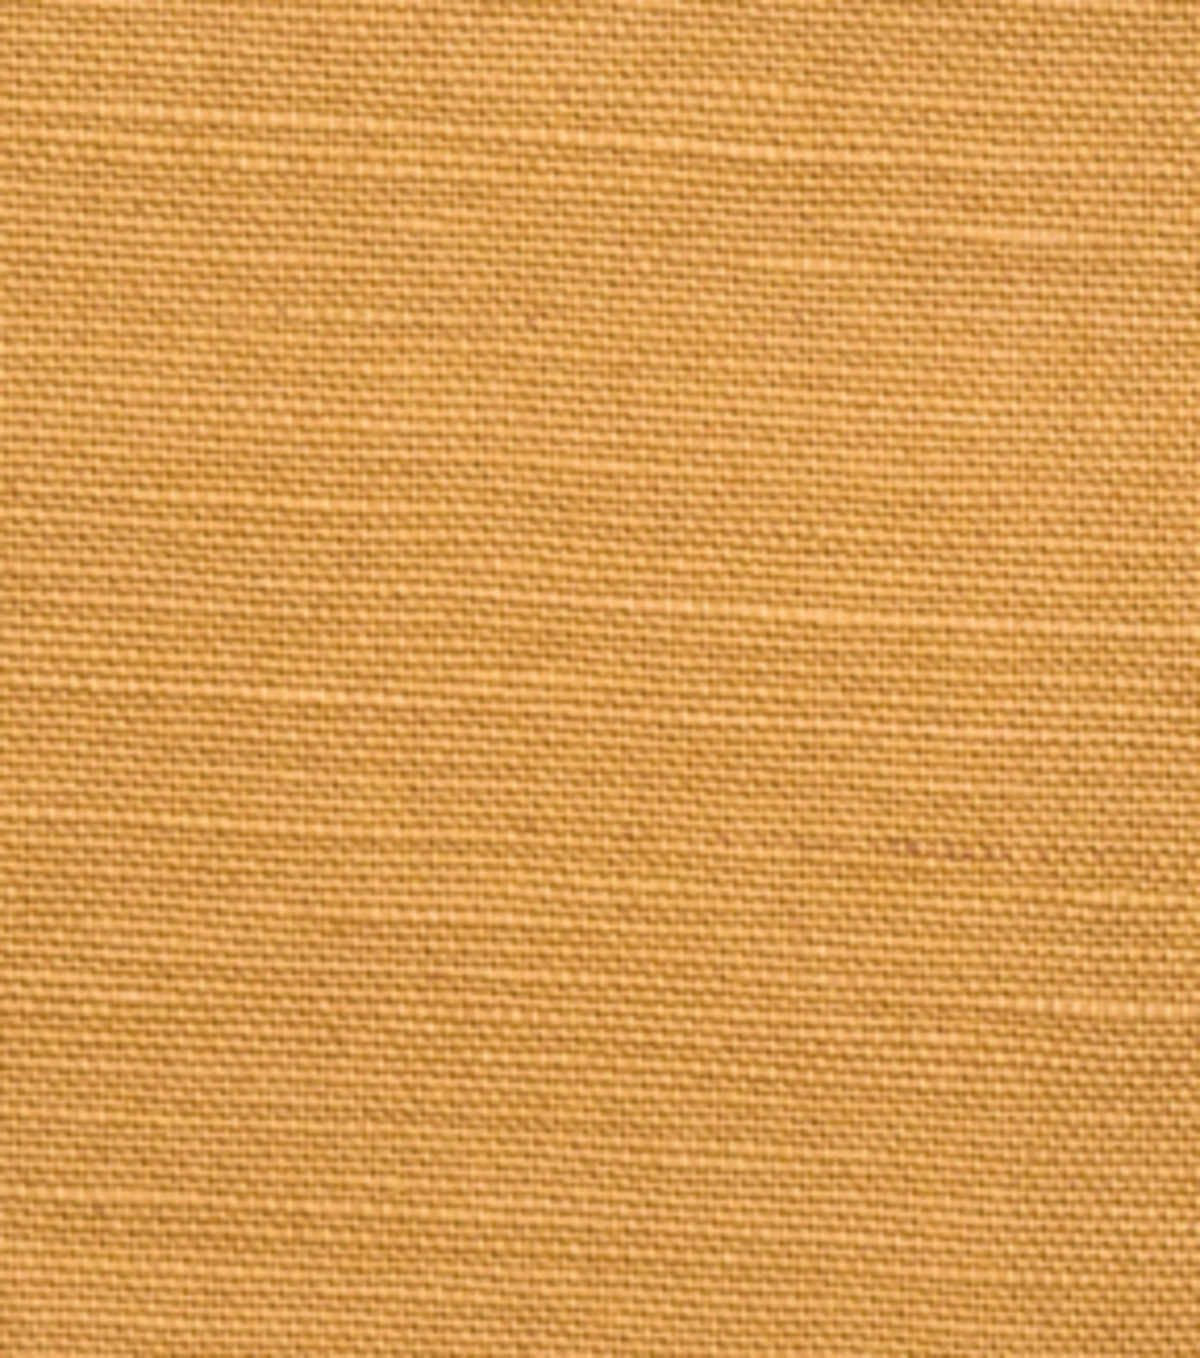 Home Decor 8\u0022x8\u0022 Fabric Swatch-Signature Series Sonoma Linen-Cotton Midas